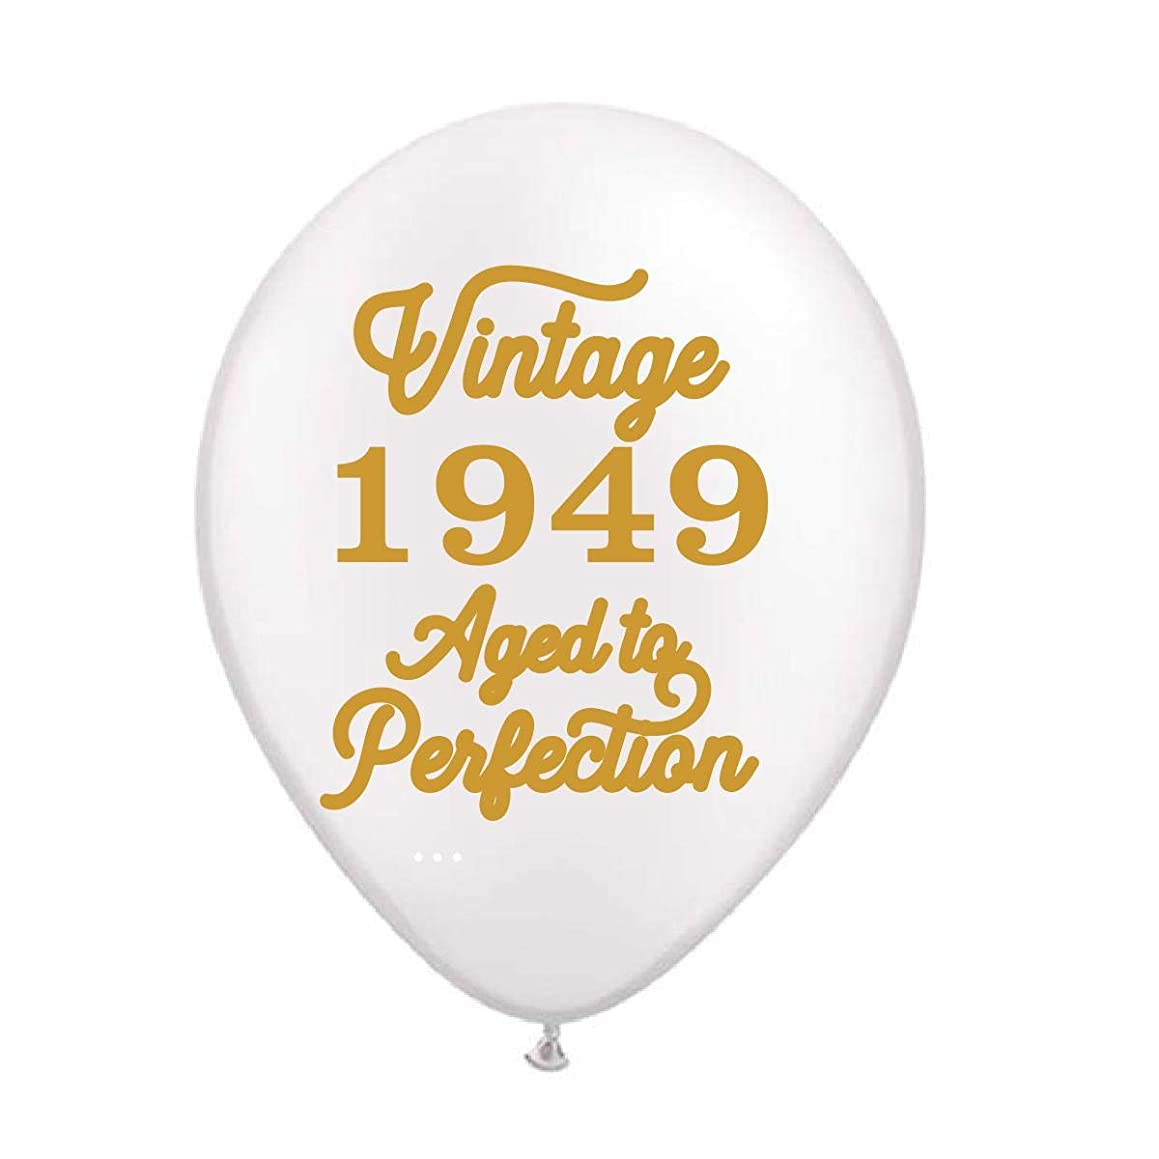 Vintage 1949 White Balloons - 60th Birthday Balloons - Set of 3-70th Birthday Decorations White and Gold -60th Birthday Party Balloons